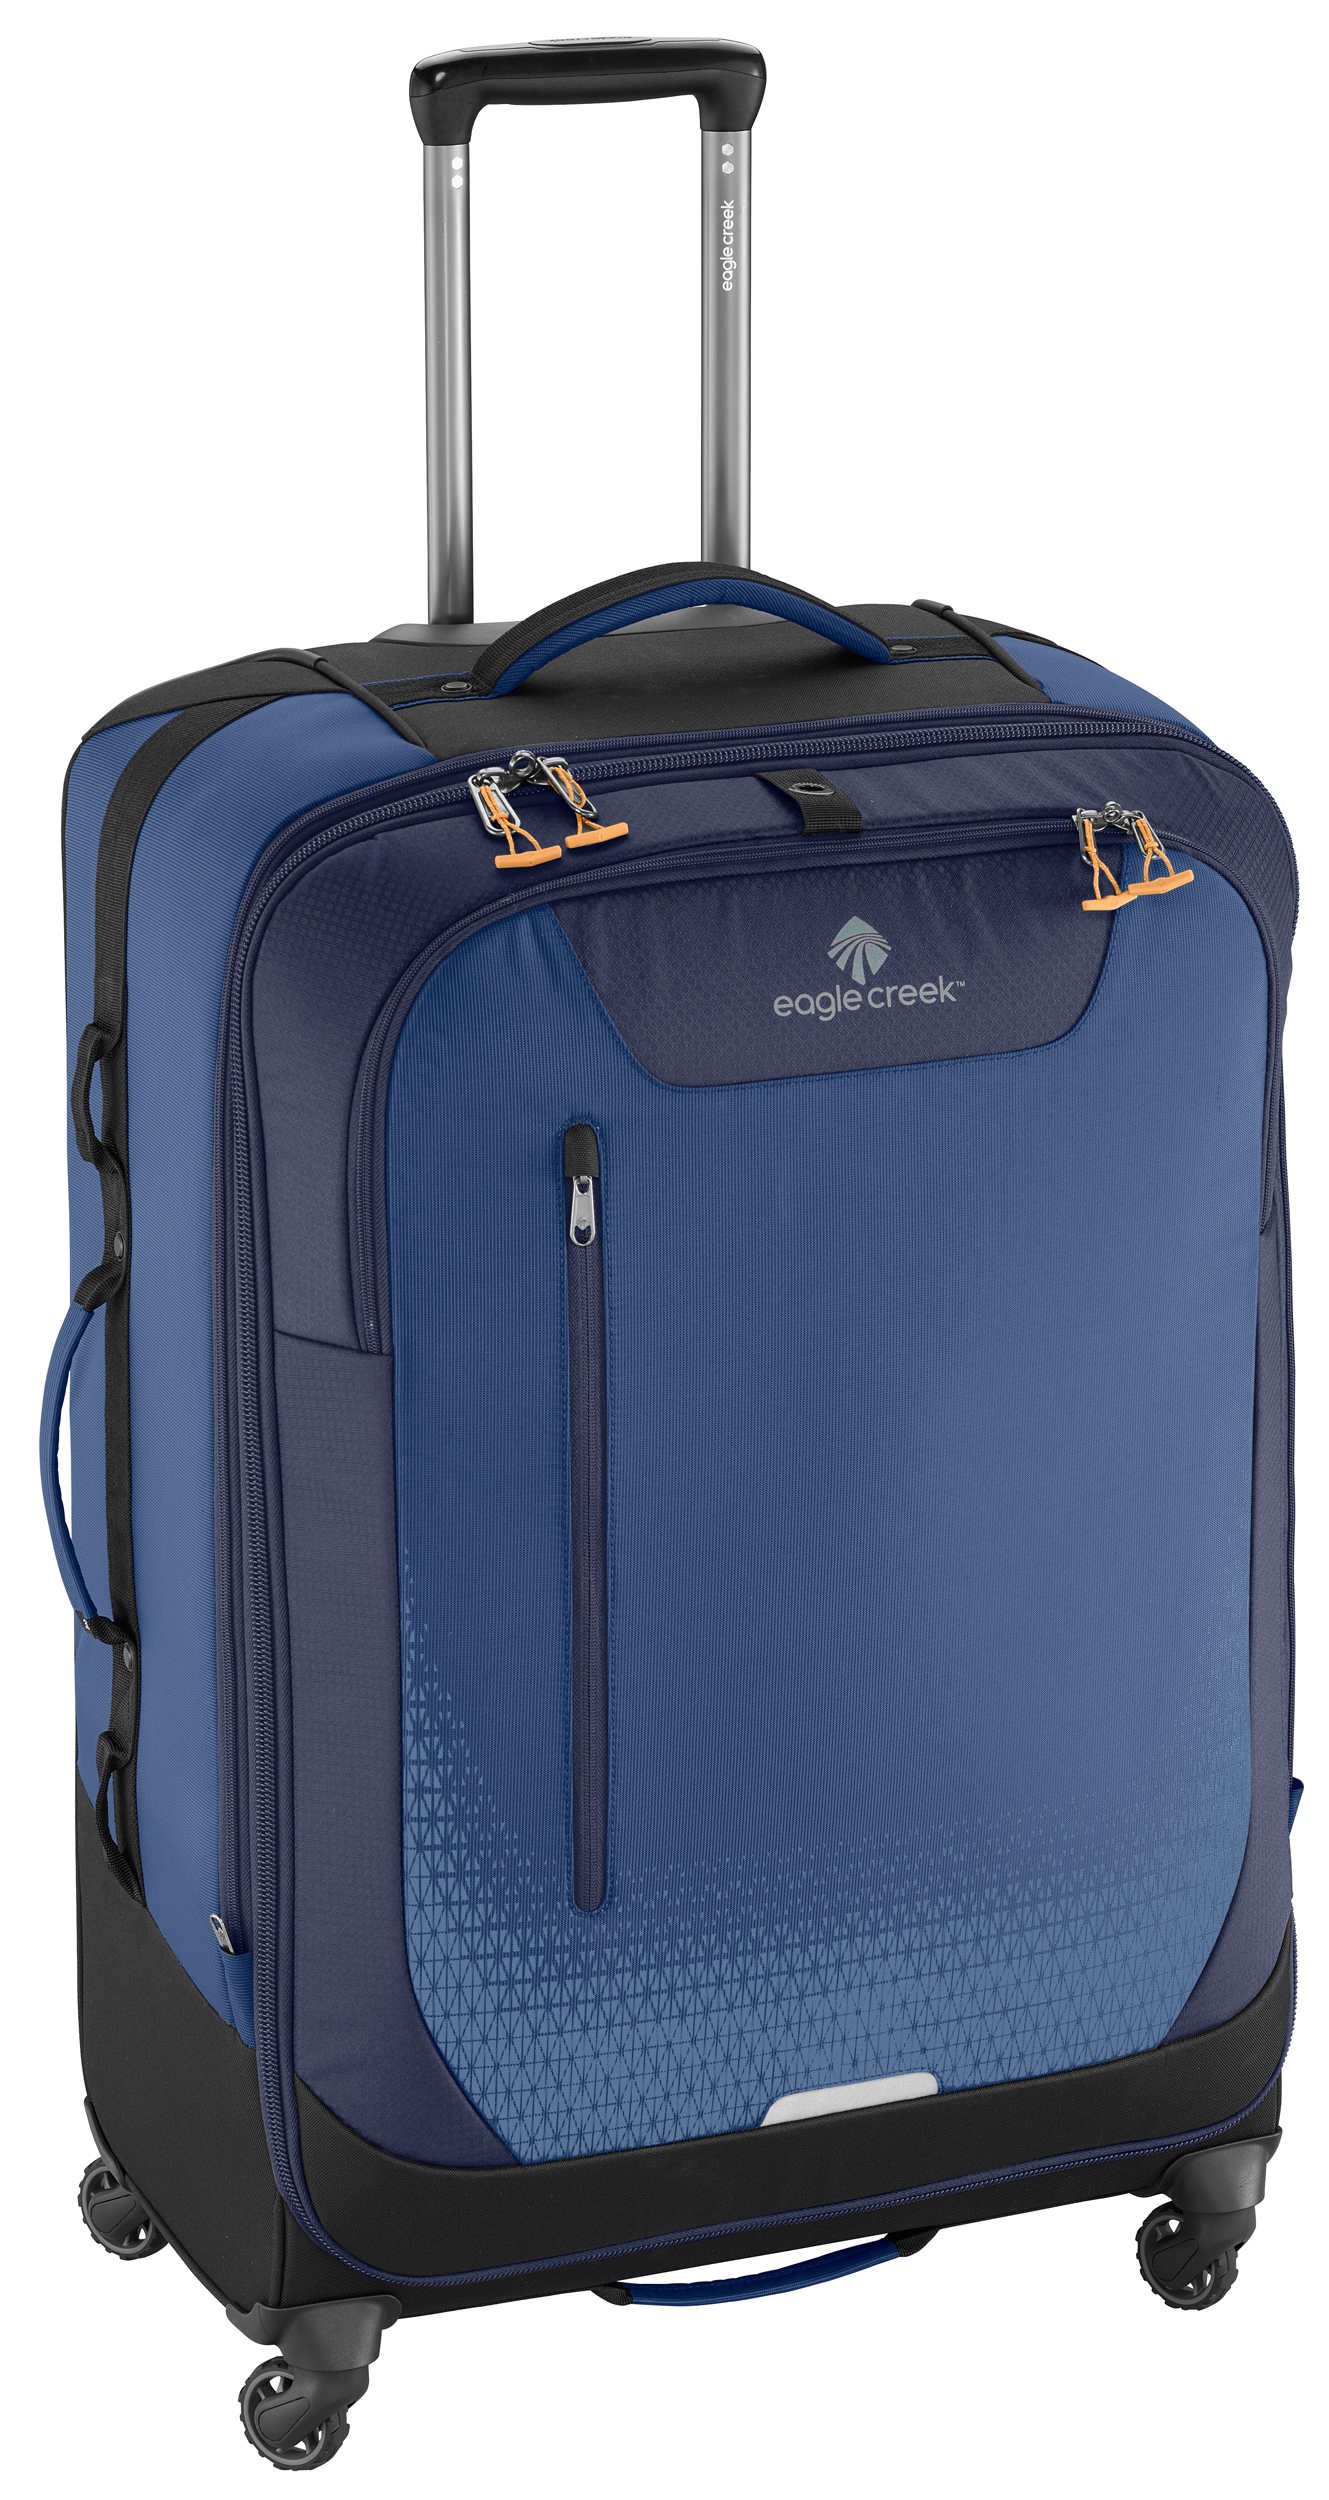 Expanse™ Awd 30 by Eagle Creek (Color: Twilight Blue)